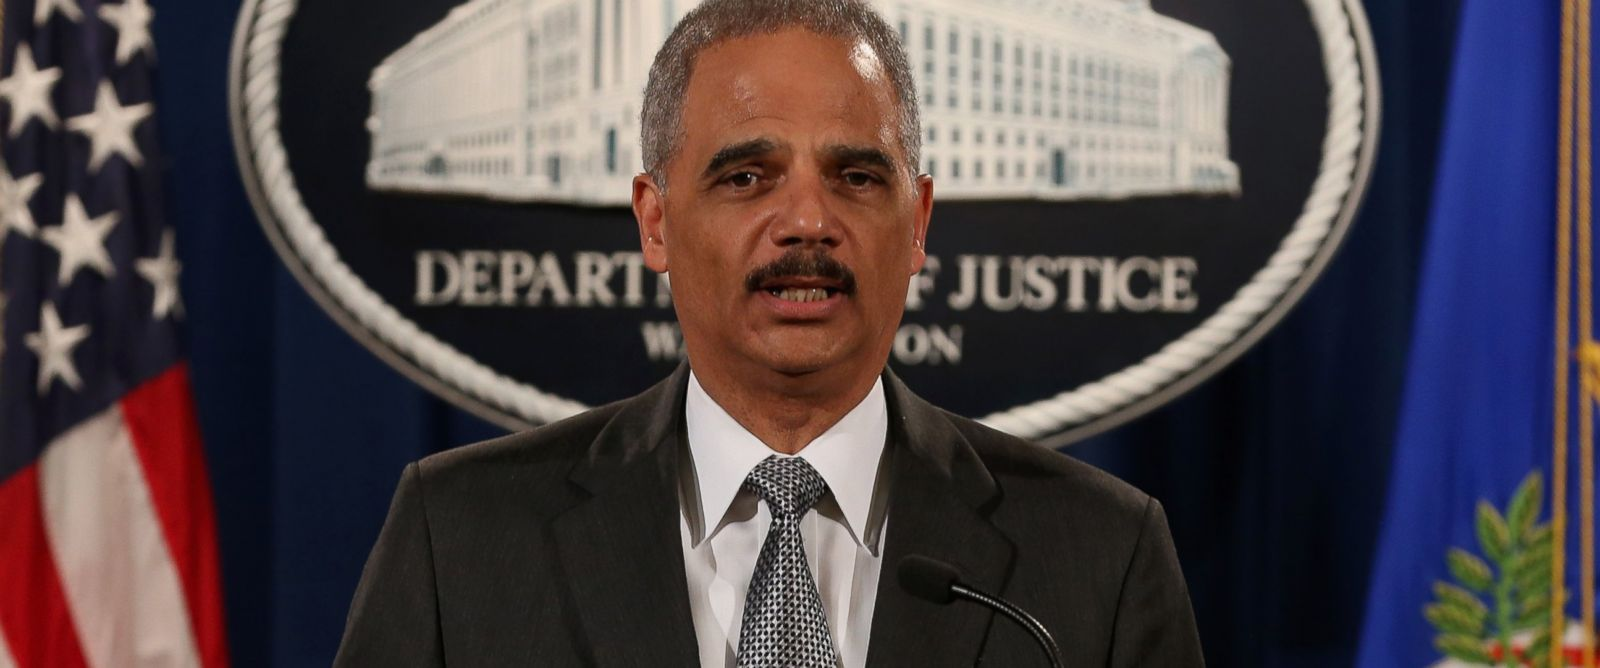 PHOTO: Eric Holder speaks at the Justice Department on Dec. 3, 2014 in Washington, D.C.